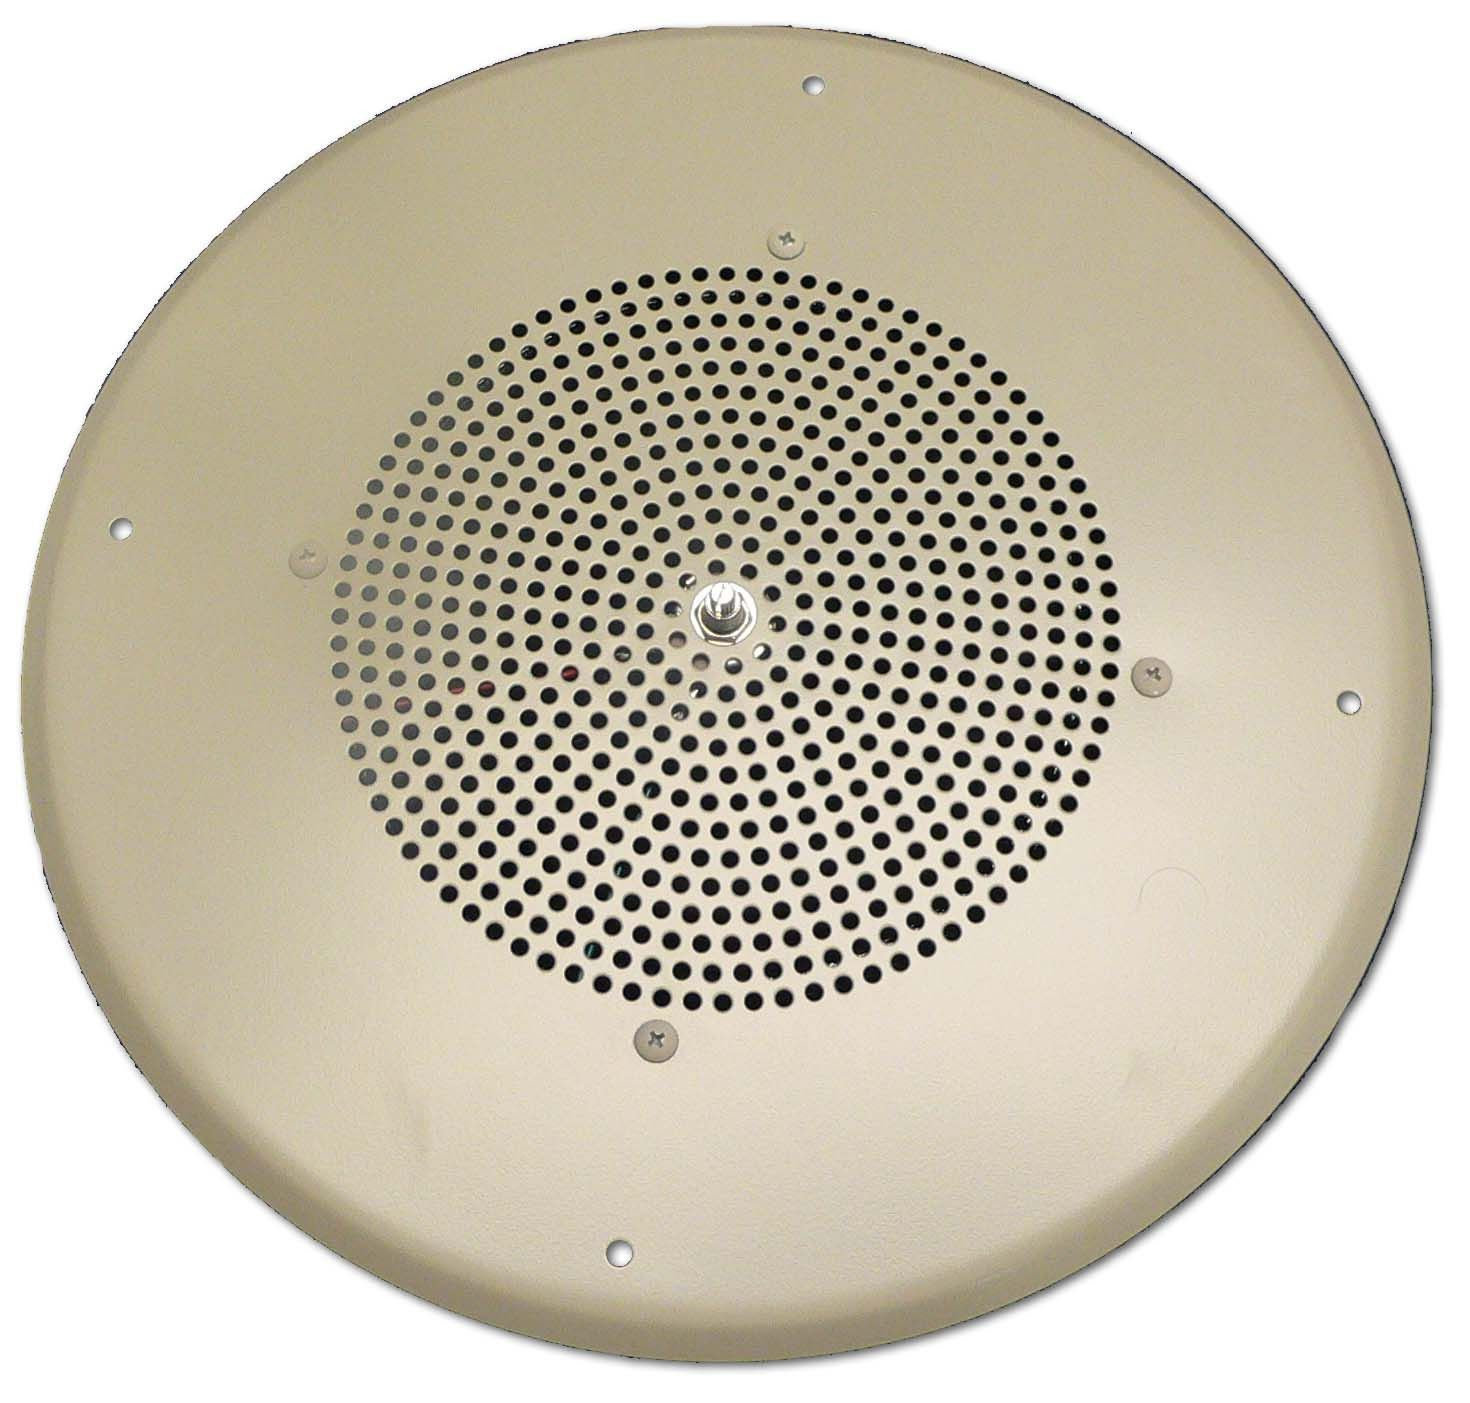 Buy 8 In Ceiling Speaker Off White At Harvey Haley For Only 8372 Speakers Wiring 1w Single Tap Design Screw Terminal